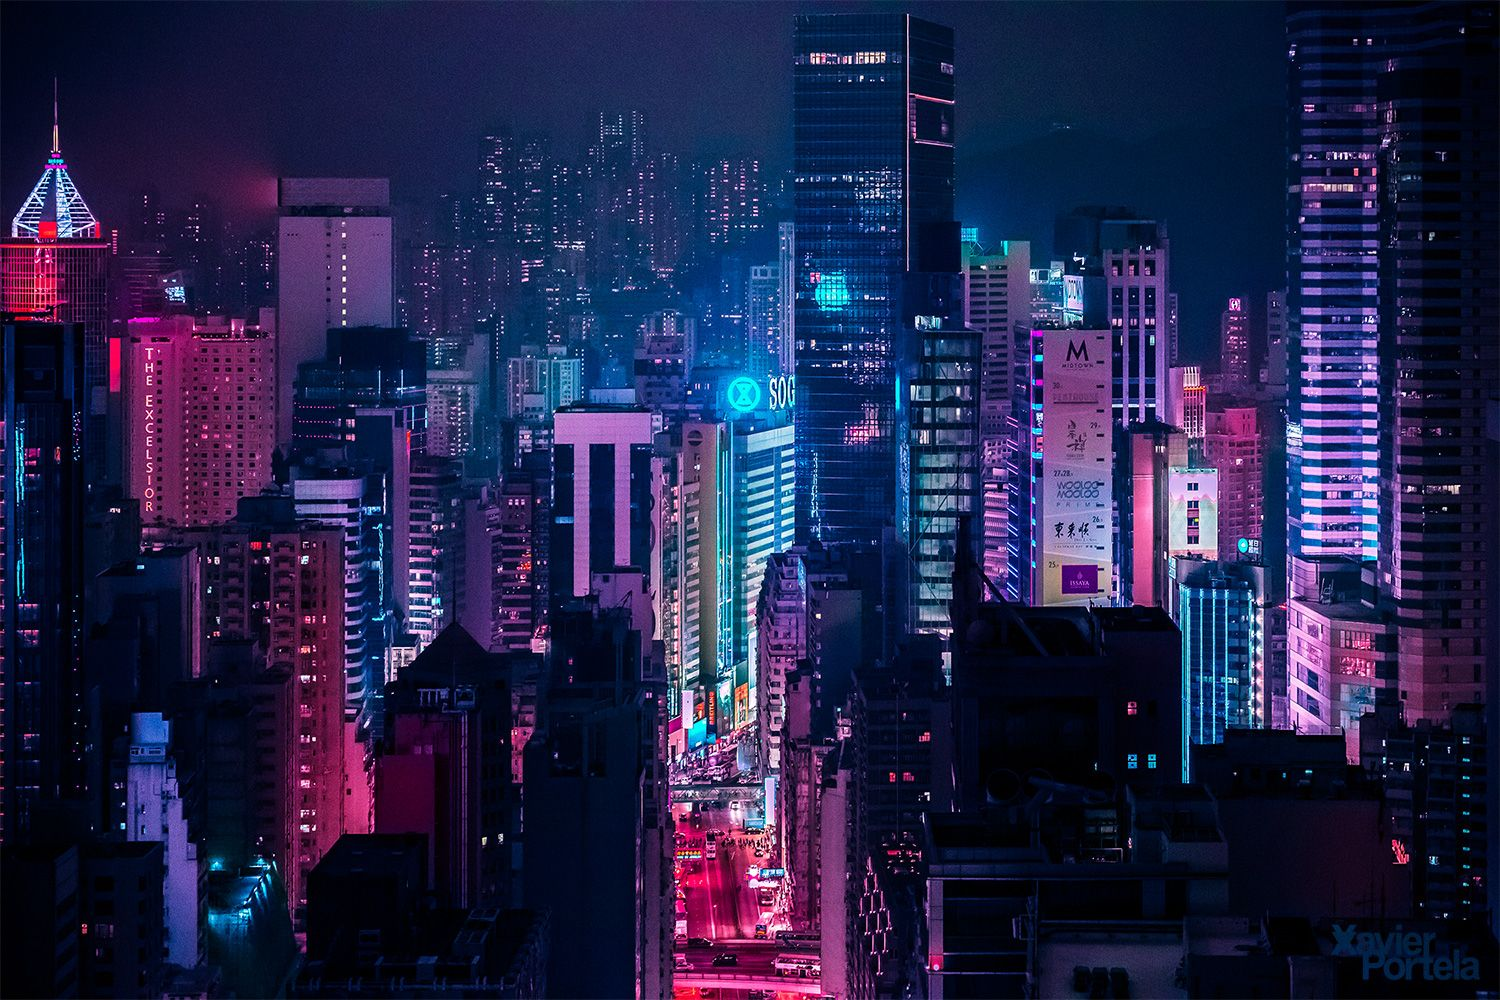 Top Wallpaper Night Aesthetic - a2a31fe98abbb9bf5b79be17113a9e74  Perfect Image Reference.jpg